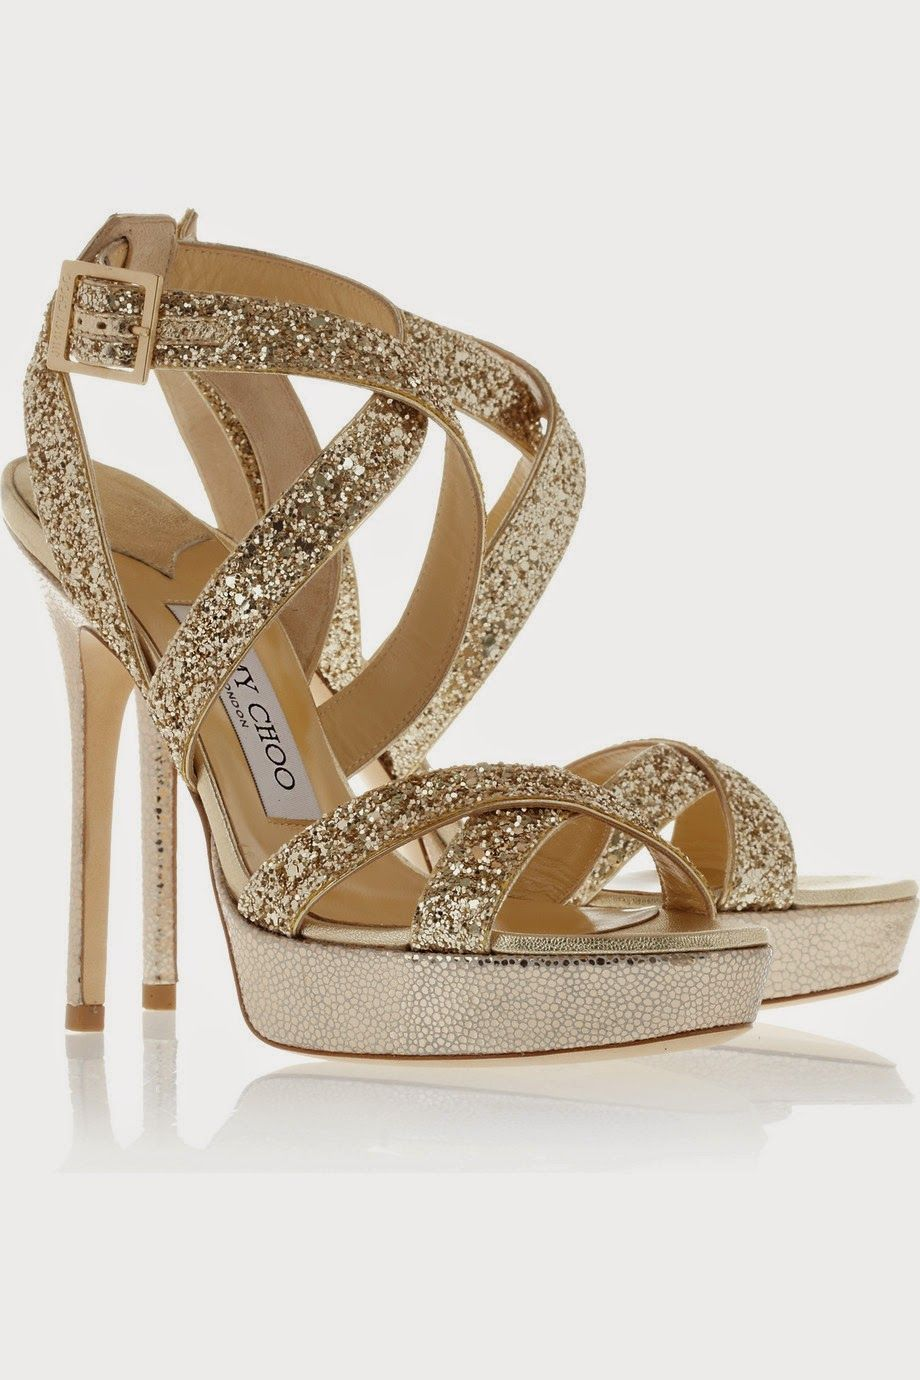 Jimmy Choo Hawk glittered leather platform sandals Heel measures  approximately 5 inches with a 1 inch platform. Slip these Jimmy Choo platfo